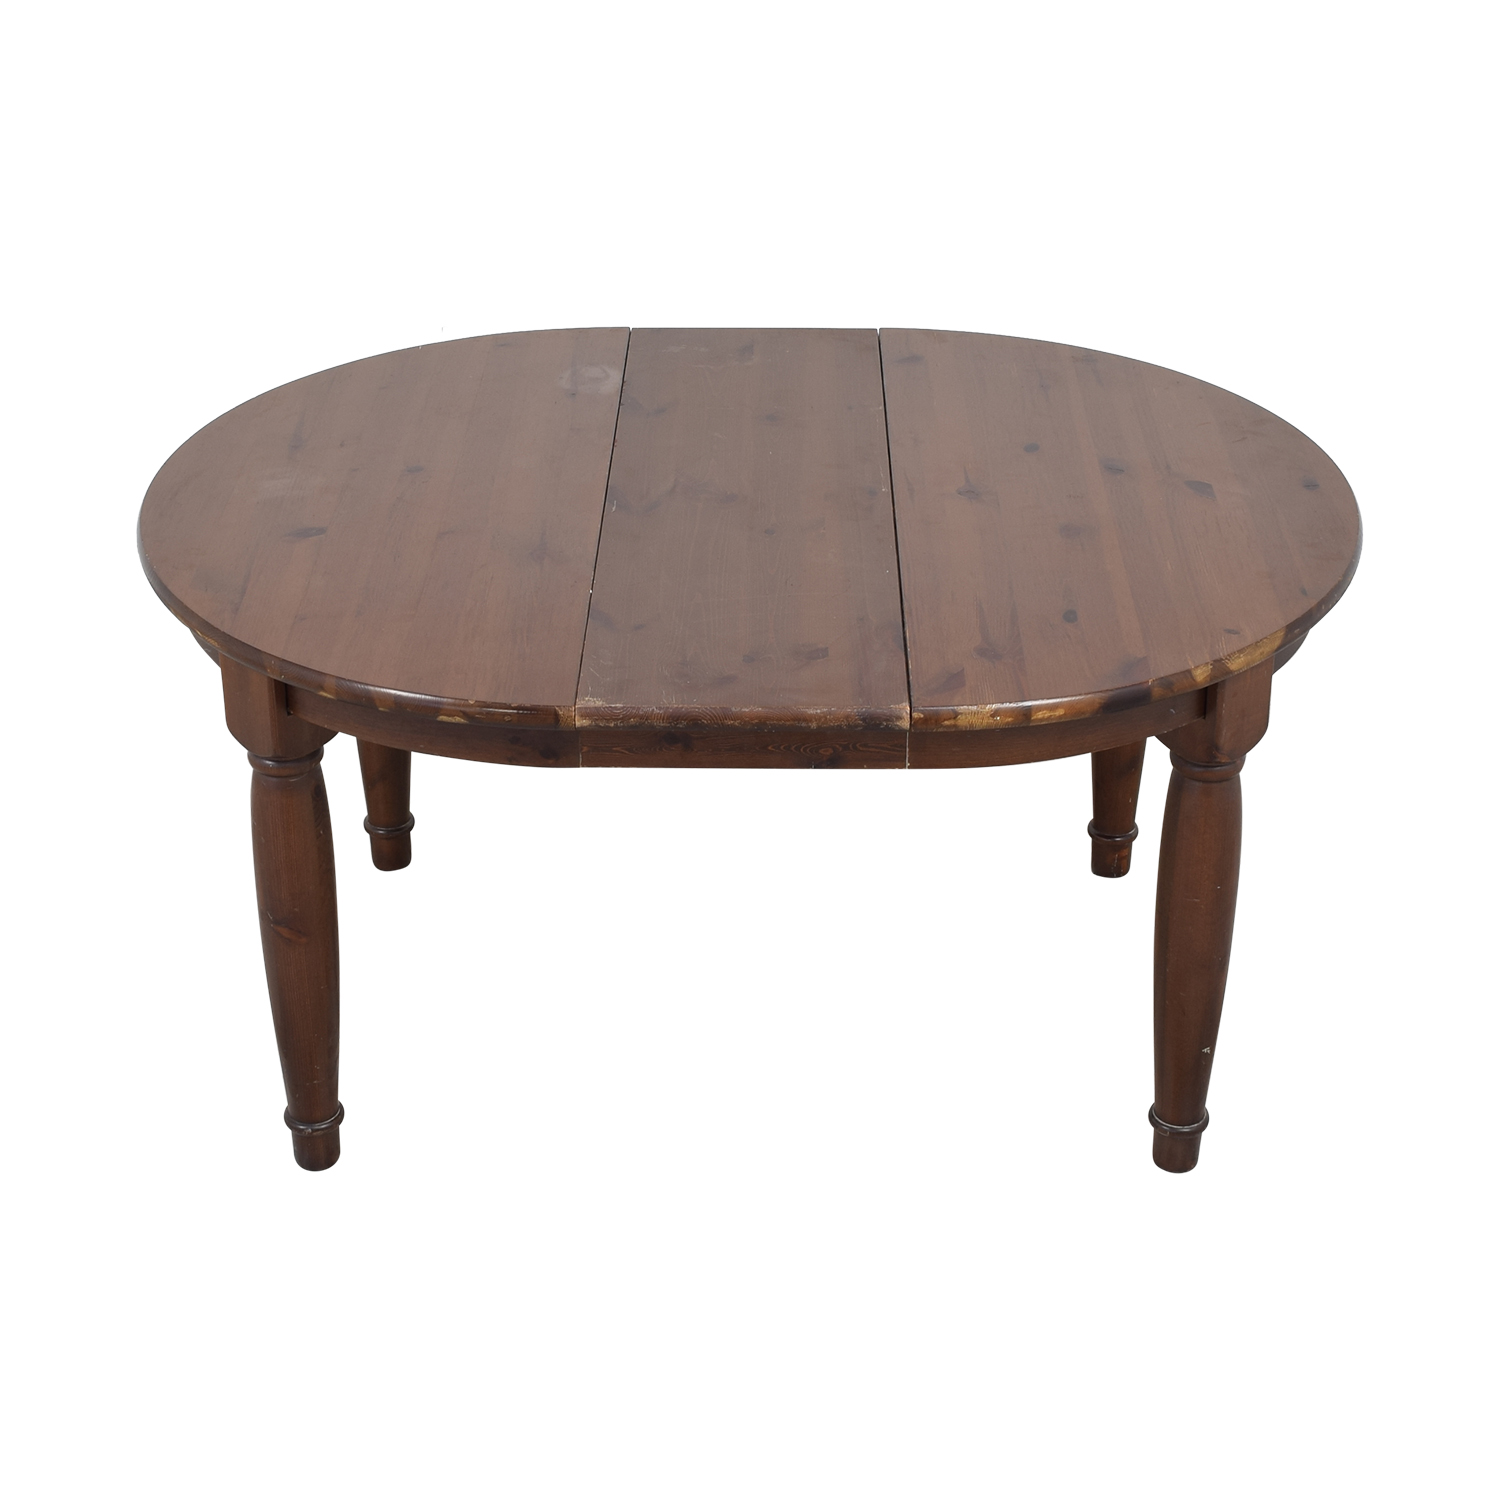 Pottery Barn Pottery Barn Round Extension Dining Table used